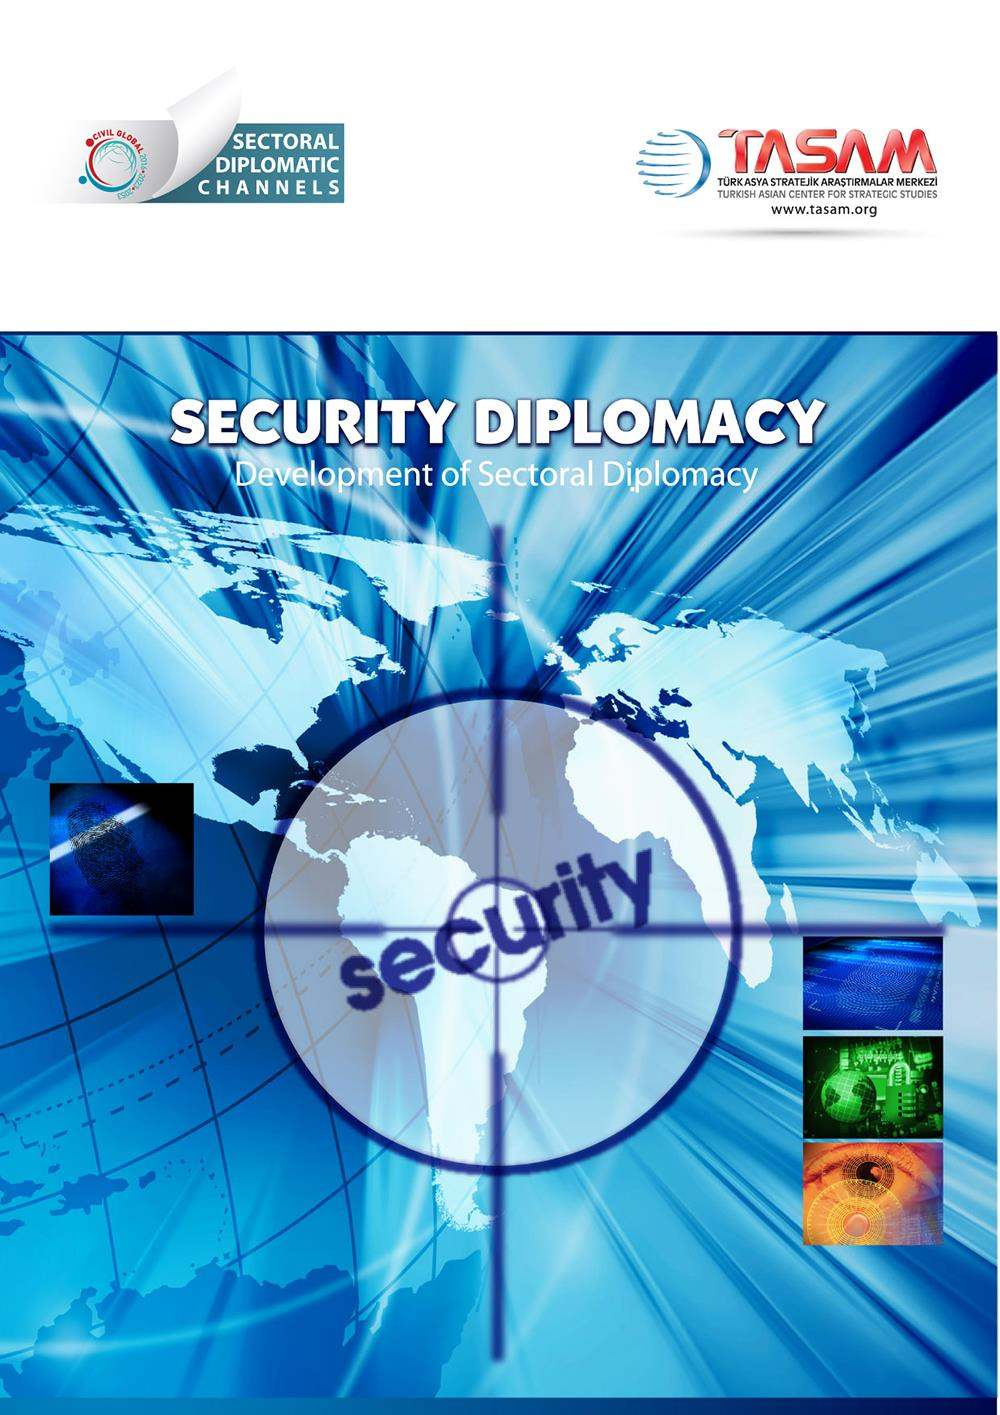 Security Diplomacy Workshop